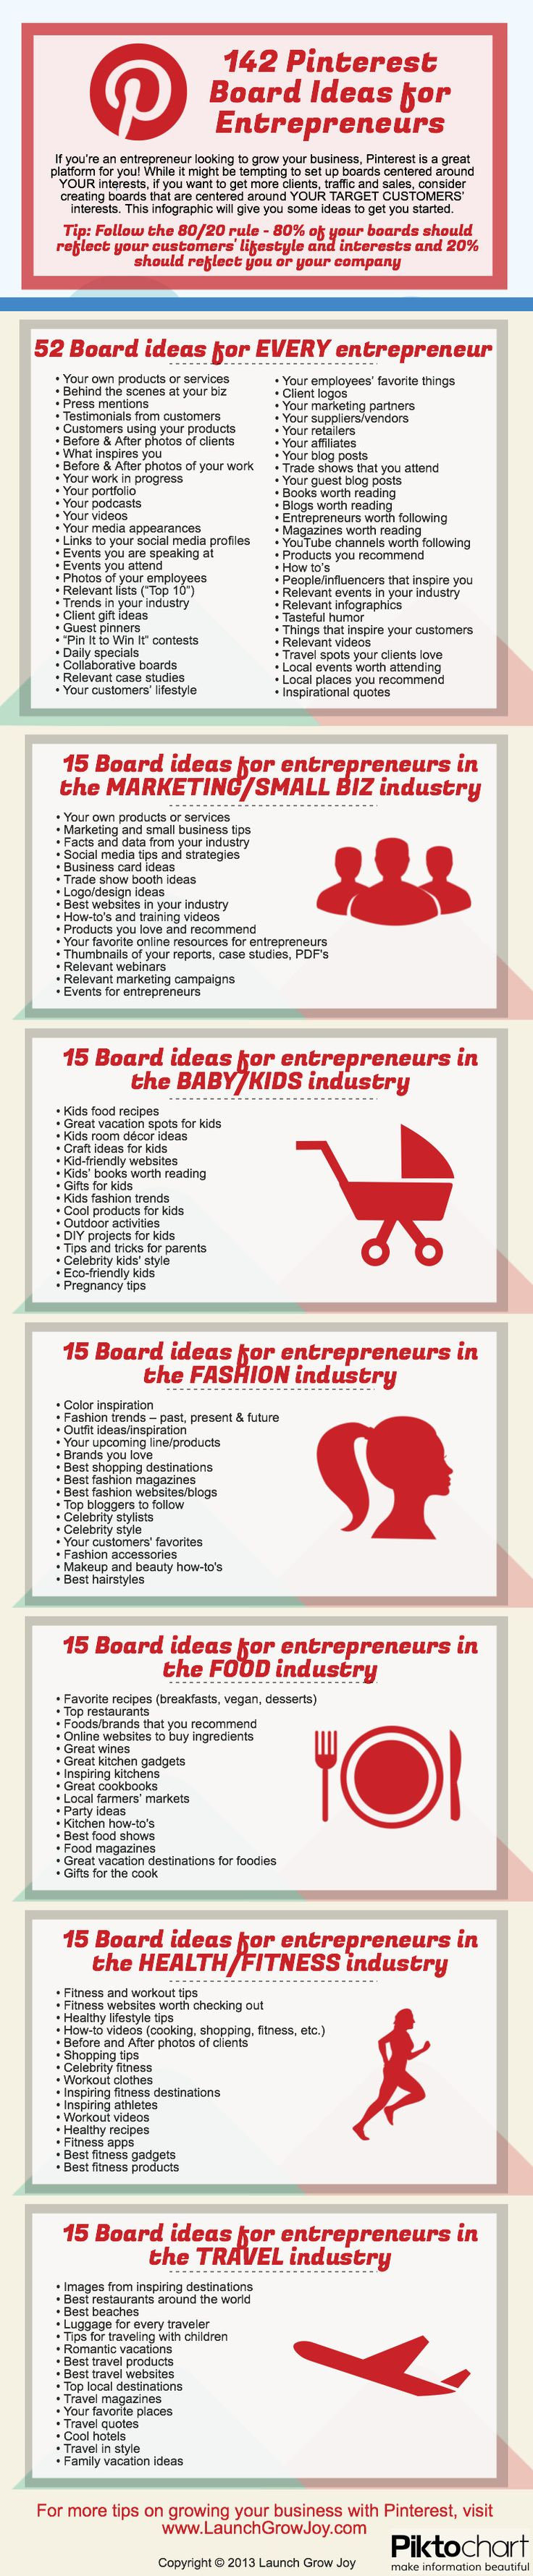 142 Pinterest Board Ideas for Entrepreneurs | Launch Grow Joy